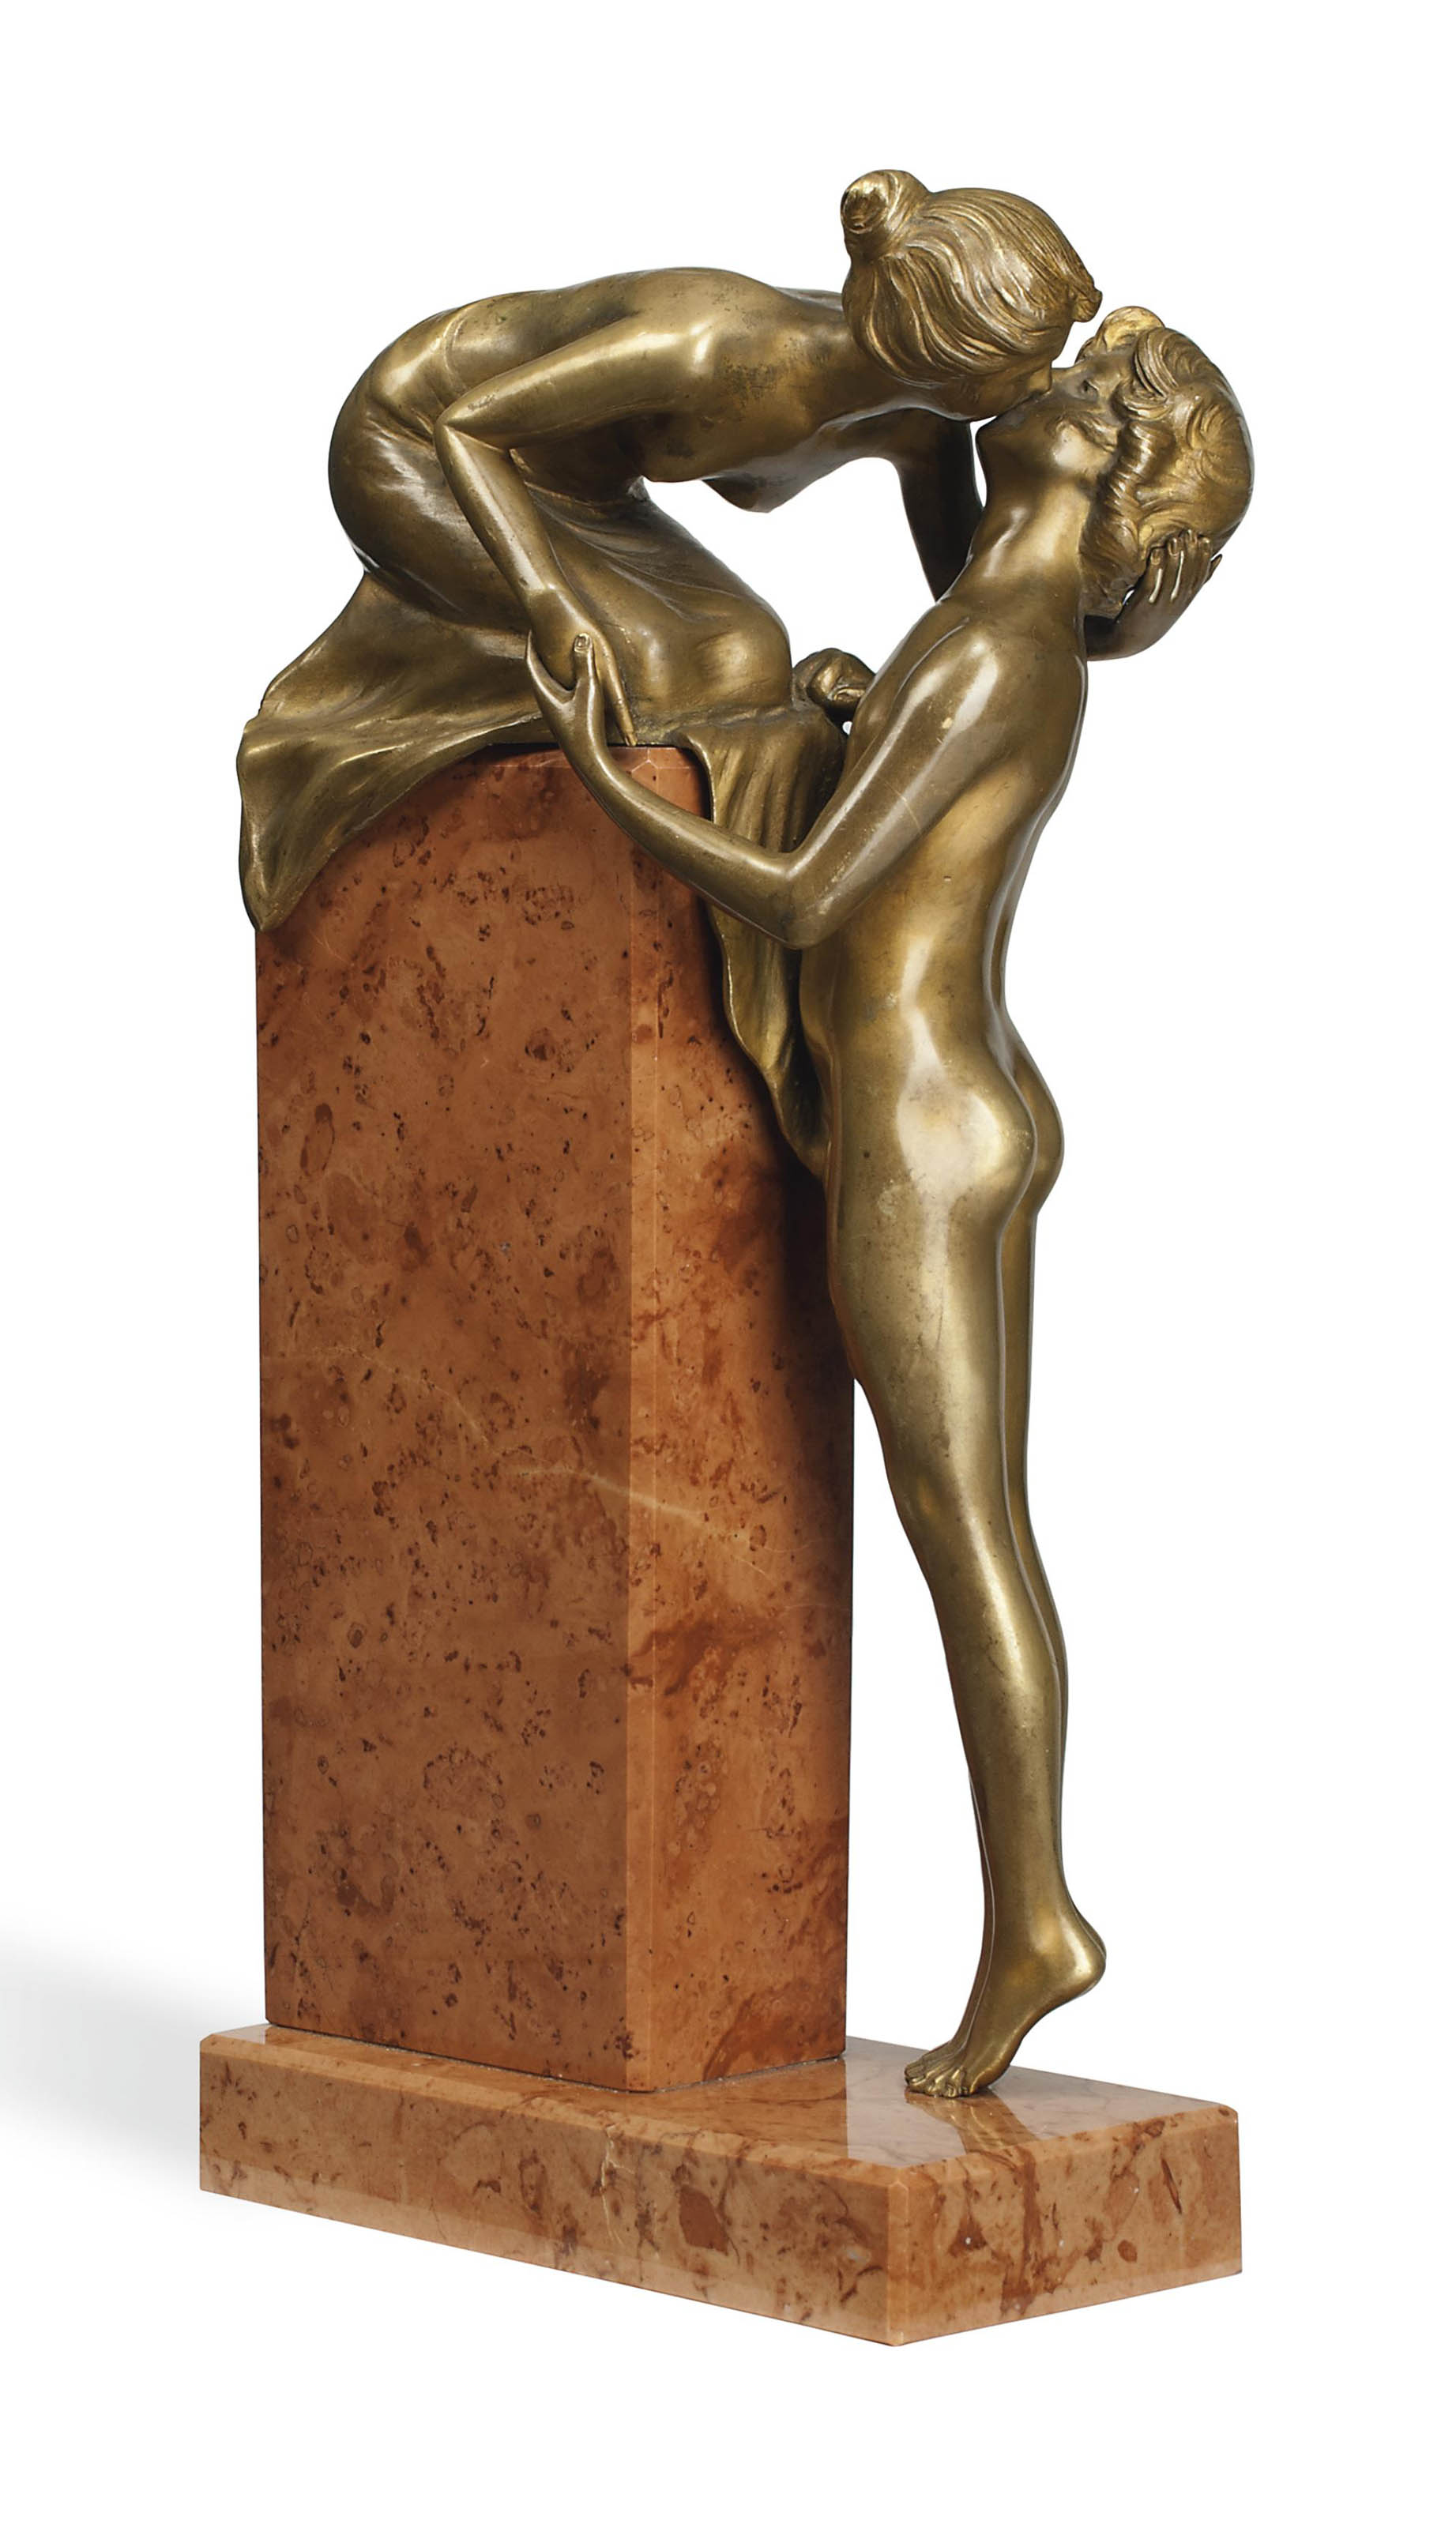 'THE KISS' A FRANZ XAVIER BERGMANN (1861-1936) COLD-PAINTED BRONZE  GROUP